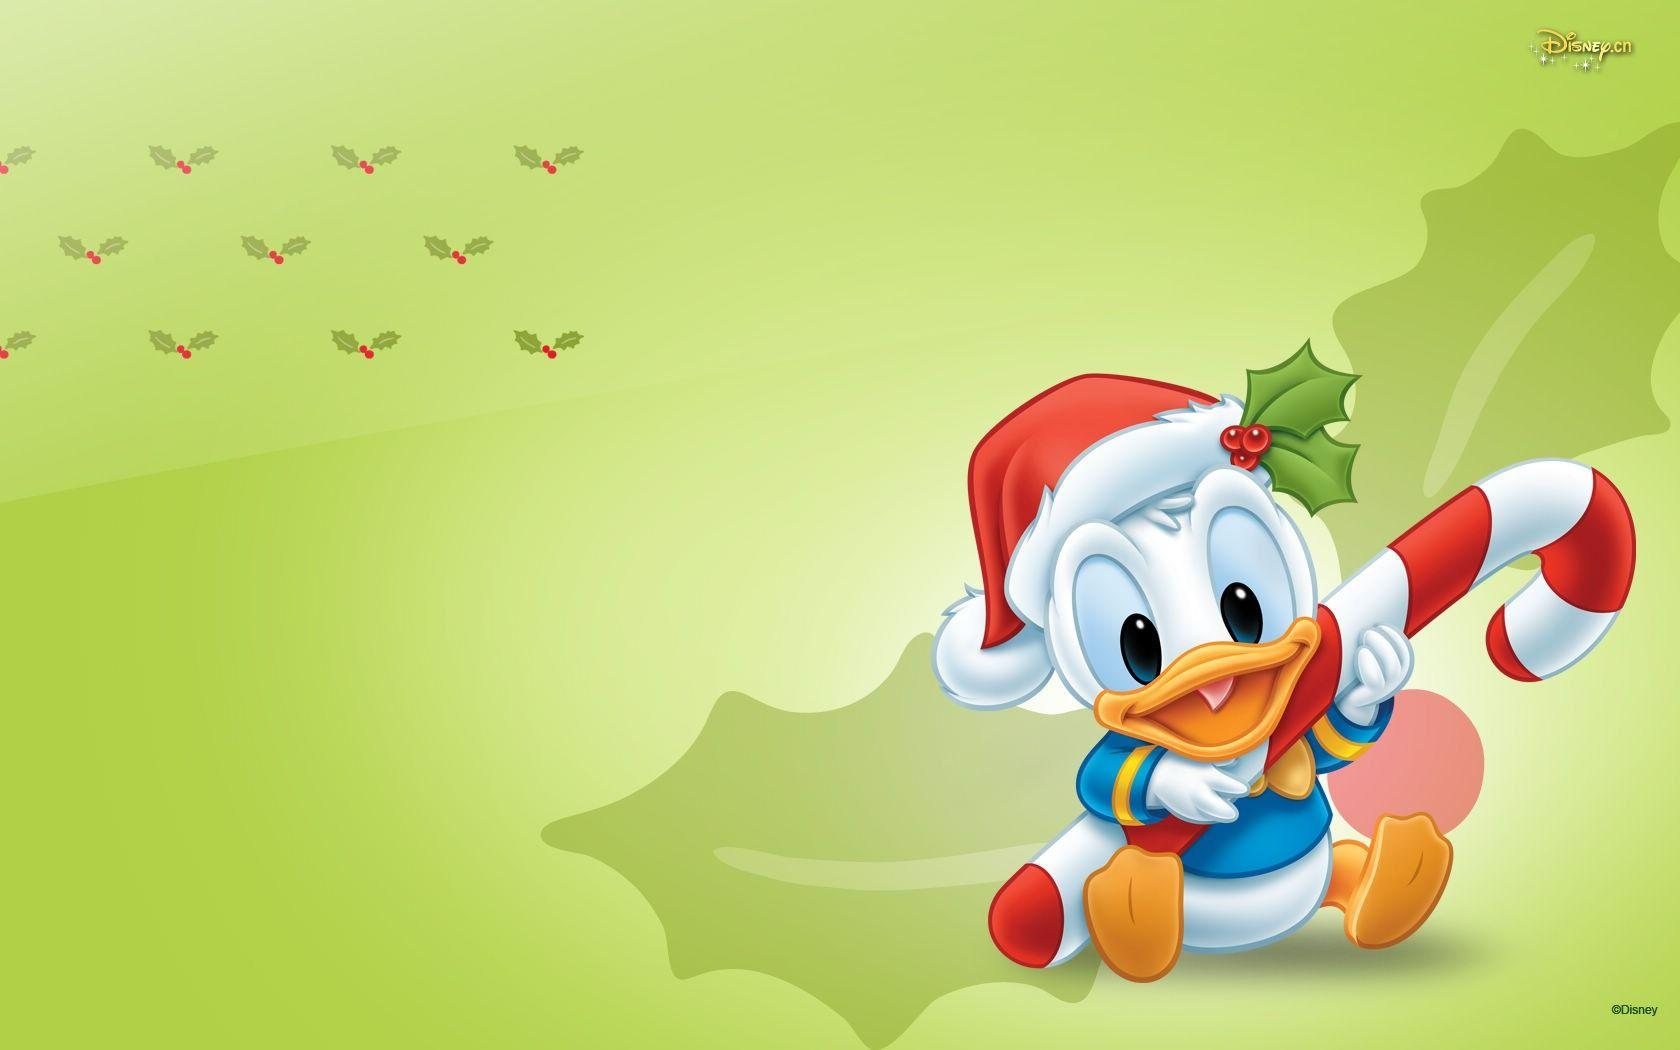 Donald duck wallpapers wallpaper cave for Fondos animados 2016